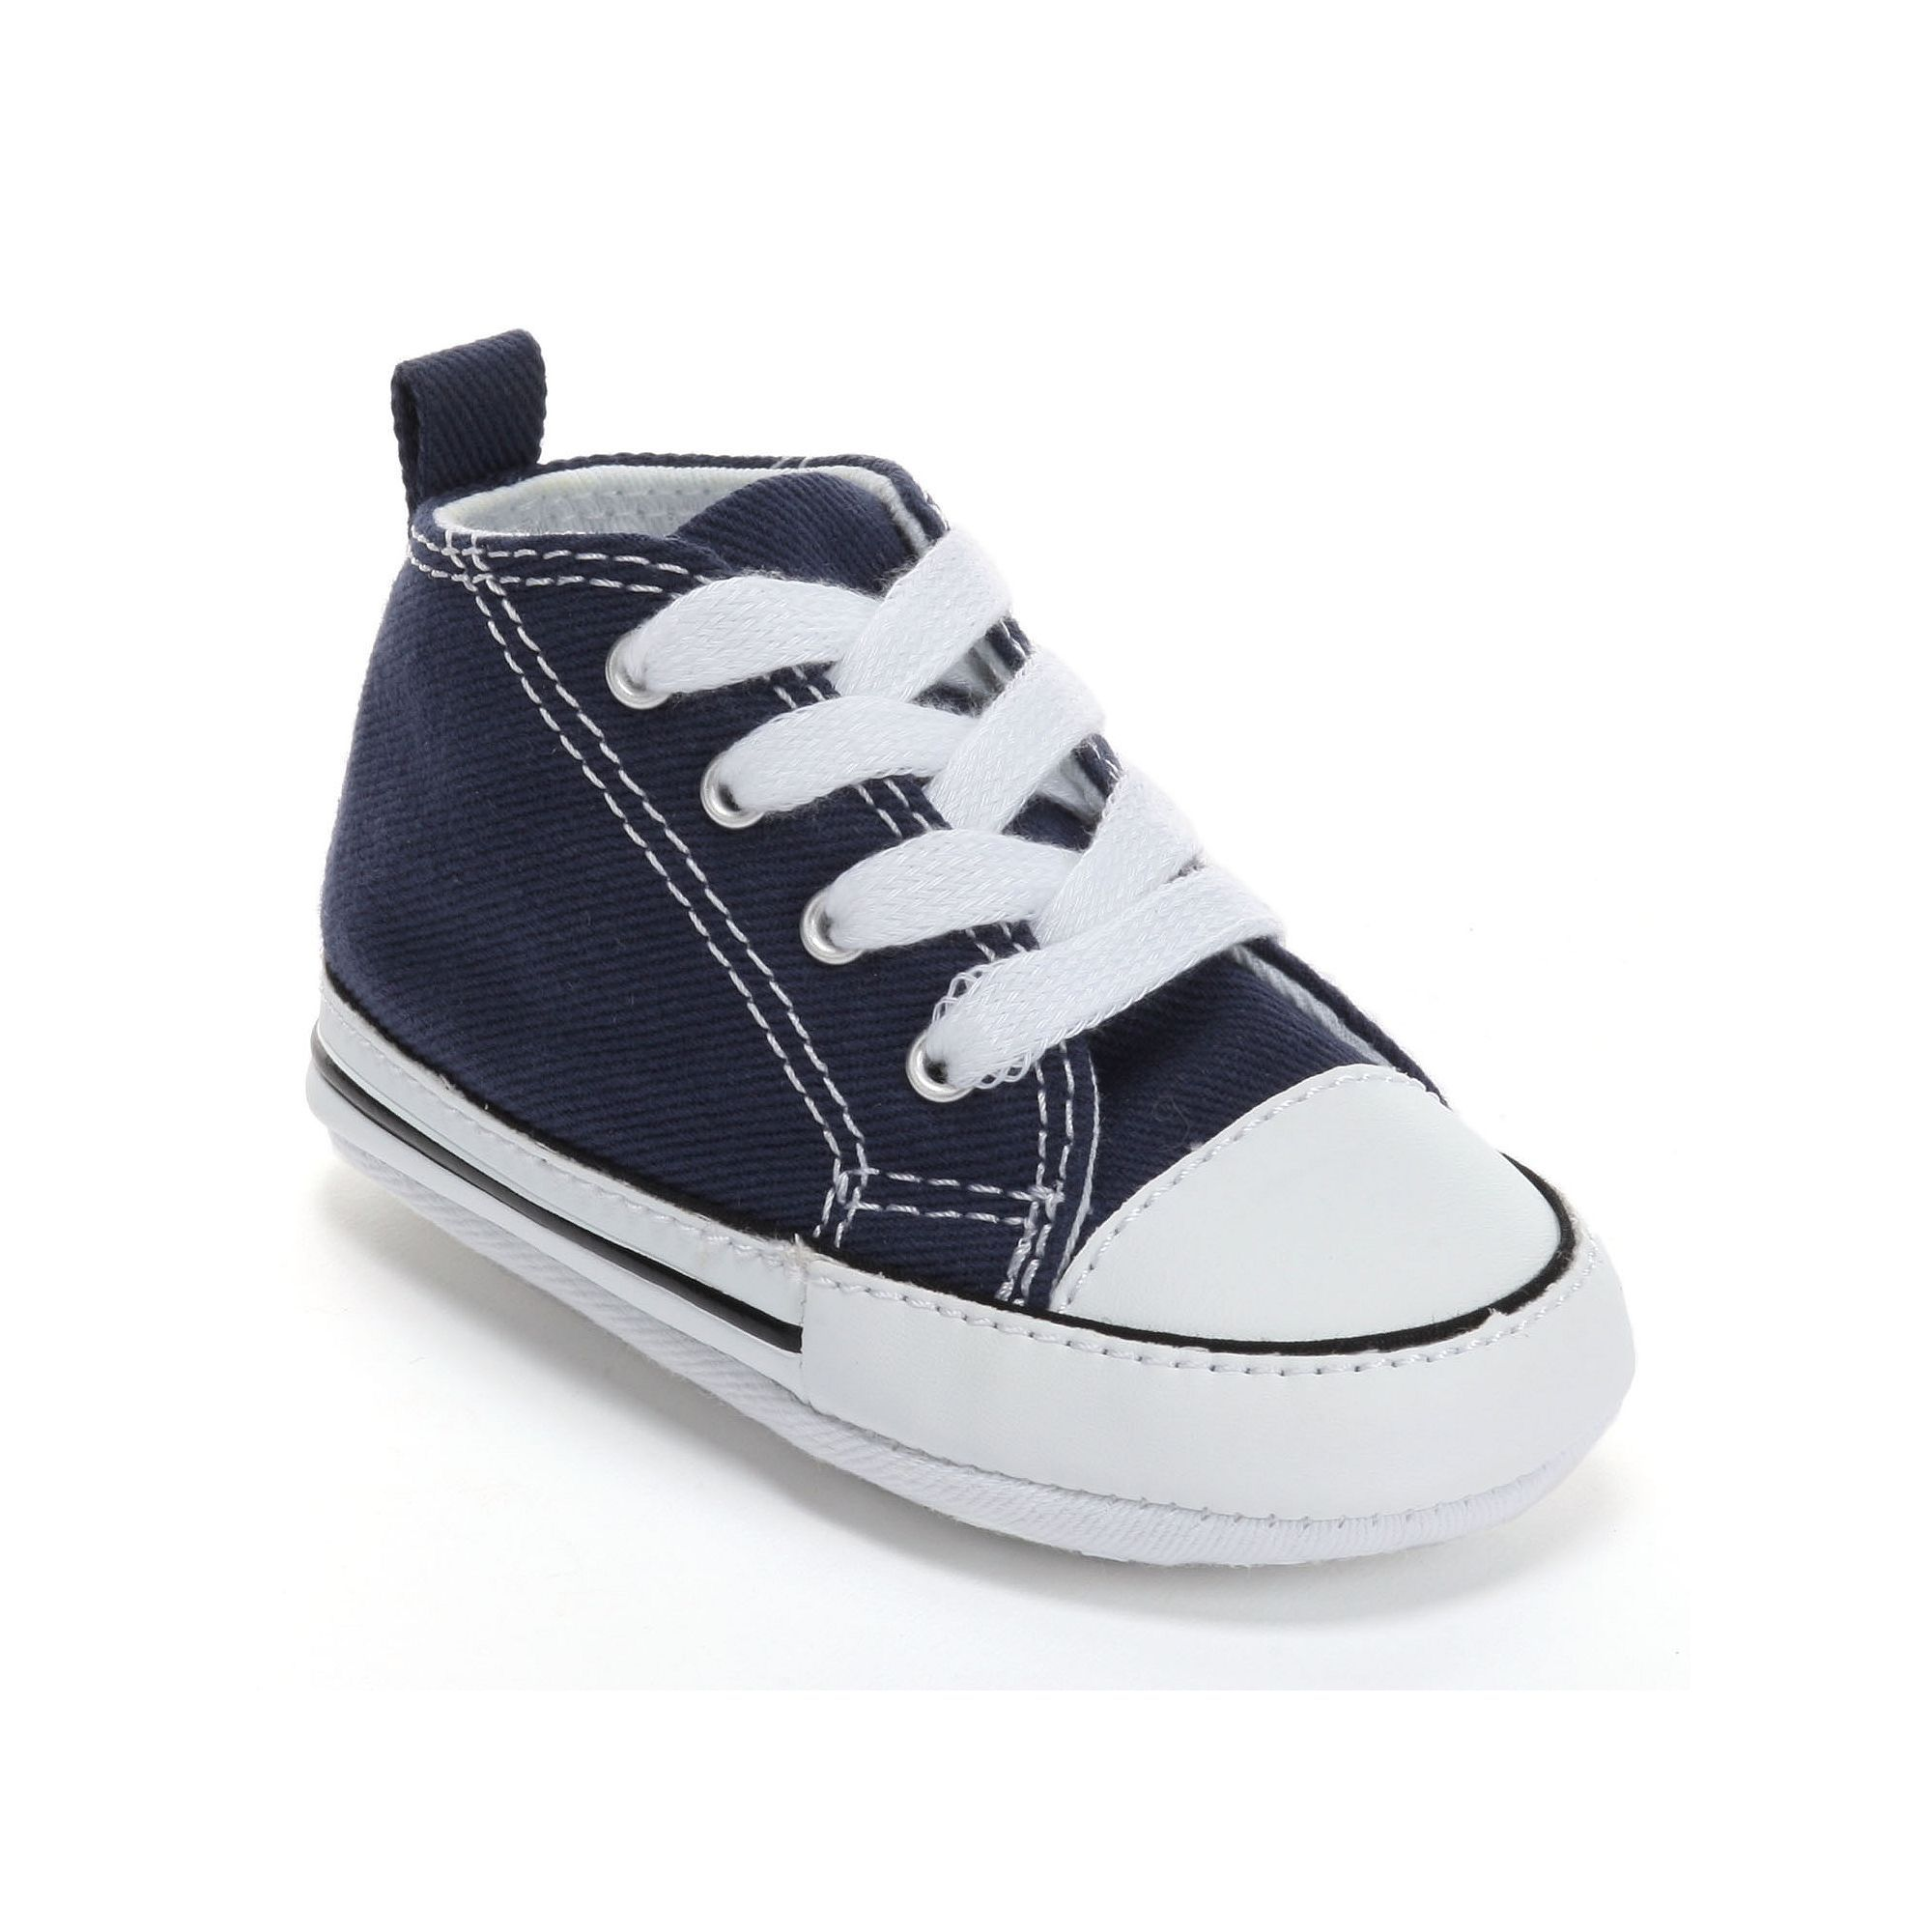 ebdf35cafa93 Baby Converse First Star Crib Shoes